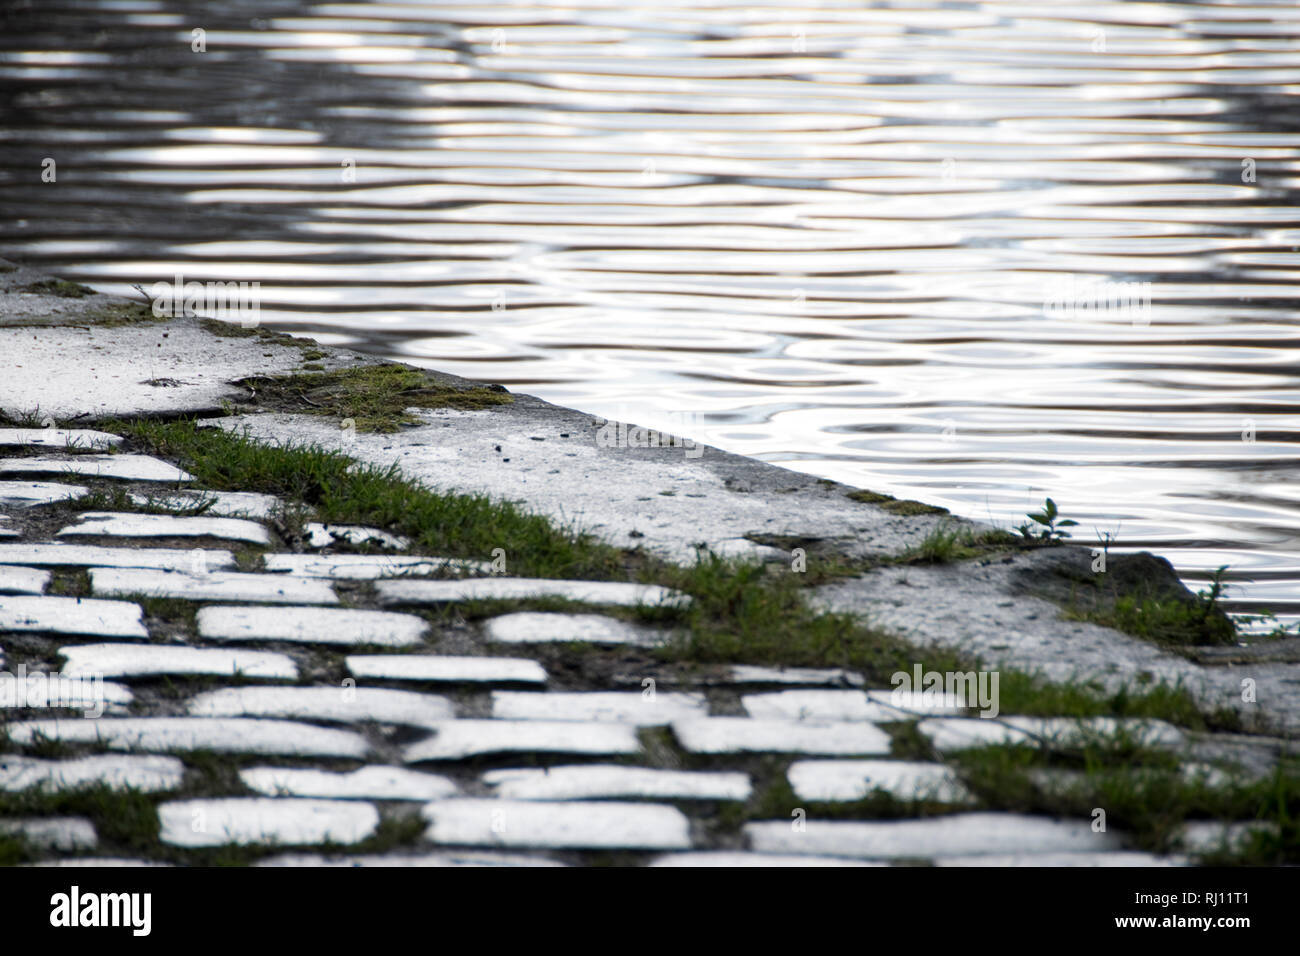 Wet cobblestones and ripples in the water of the Sheffield and Tinsley Canal, wet winter day abstract - Stock Image